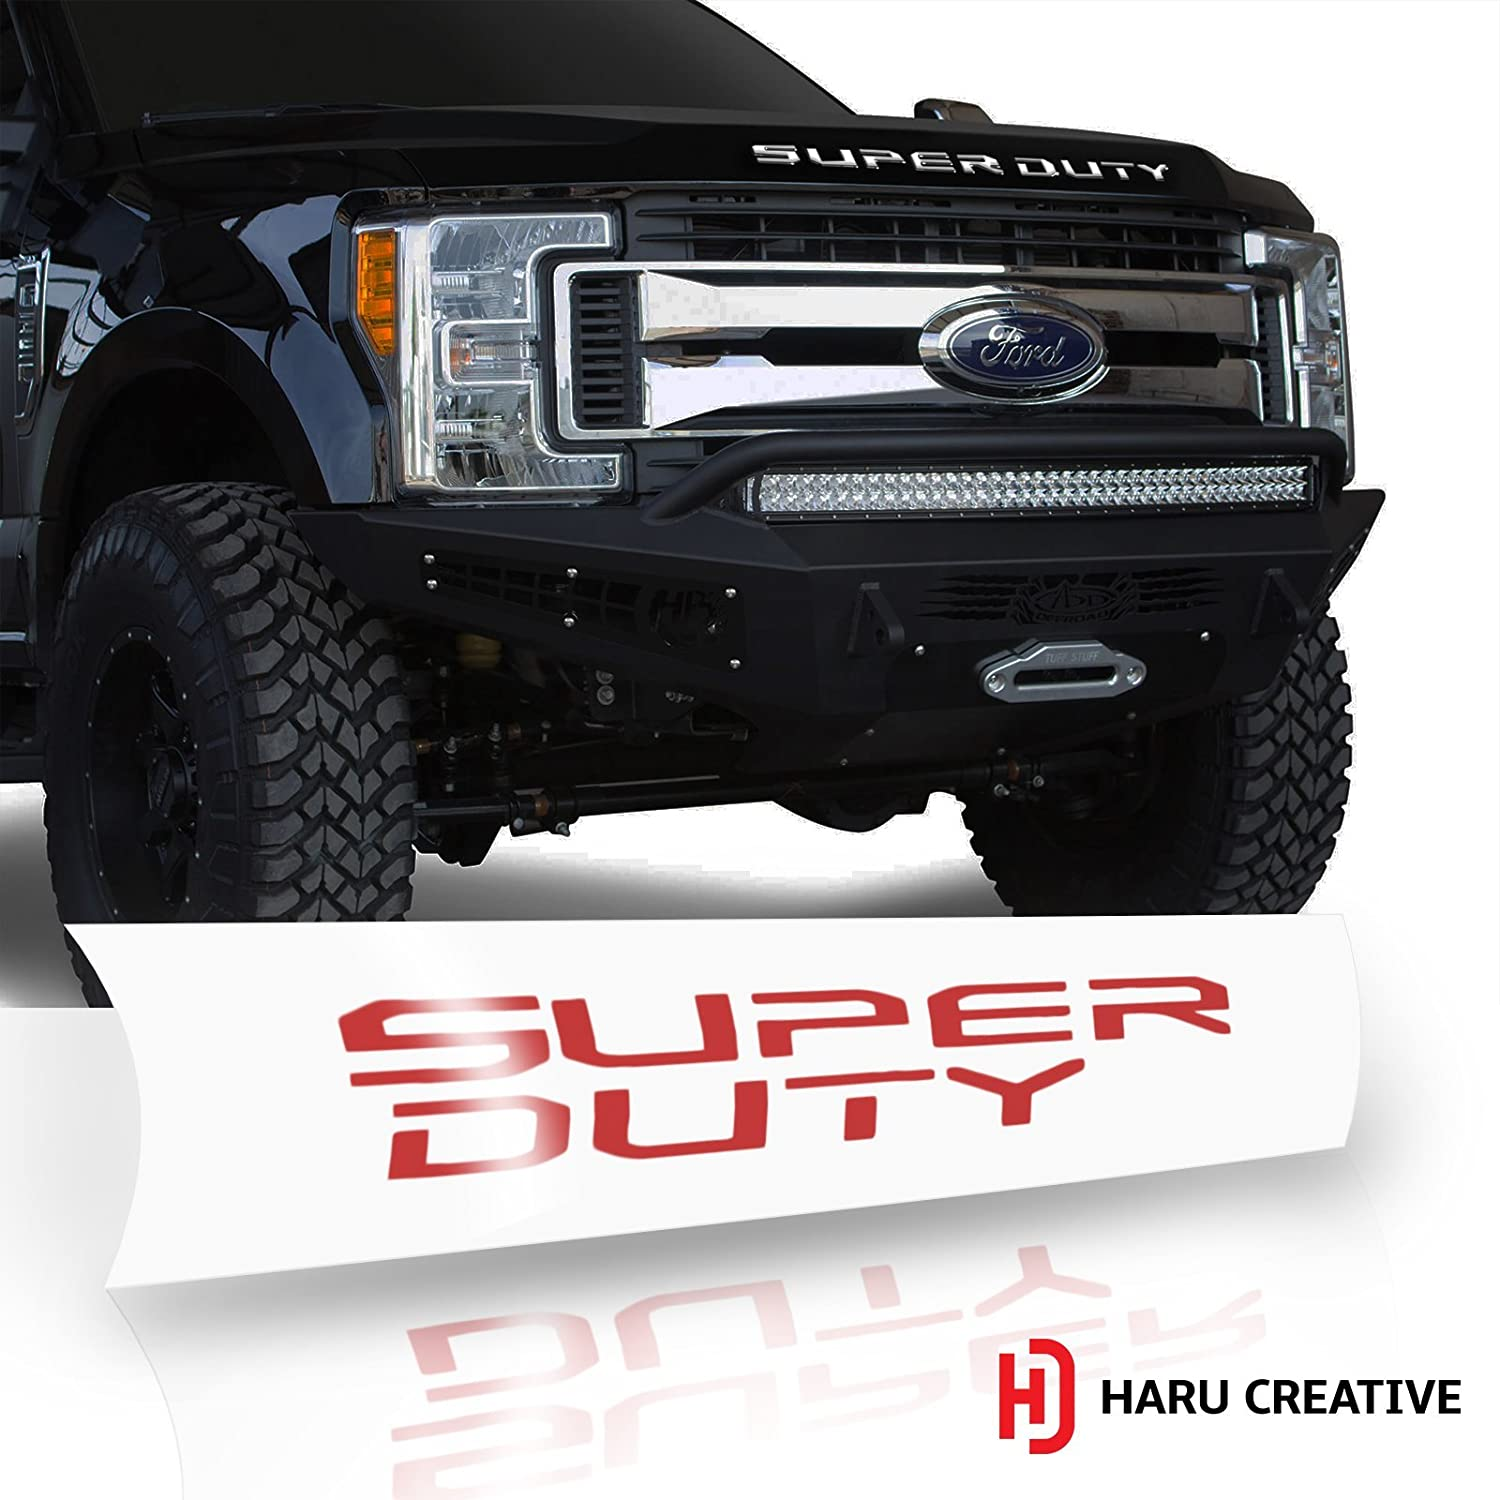 Gloss Red Haru Creative Hood Grille Letter Insert Overlay Vinyl Decal Compatible with and Fits 2017 2018 Ford Super Duty F250 F350 F450